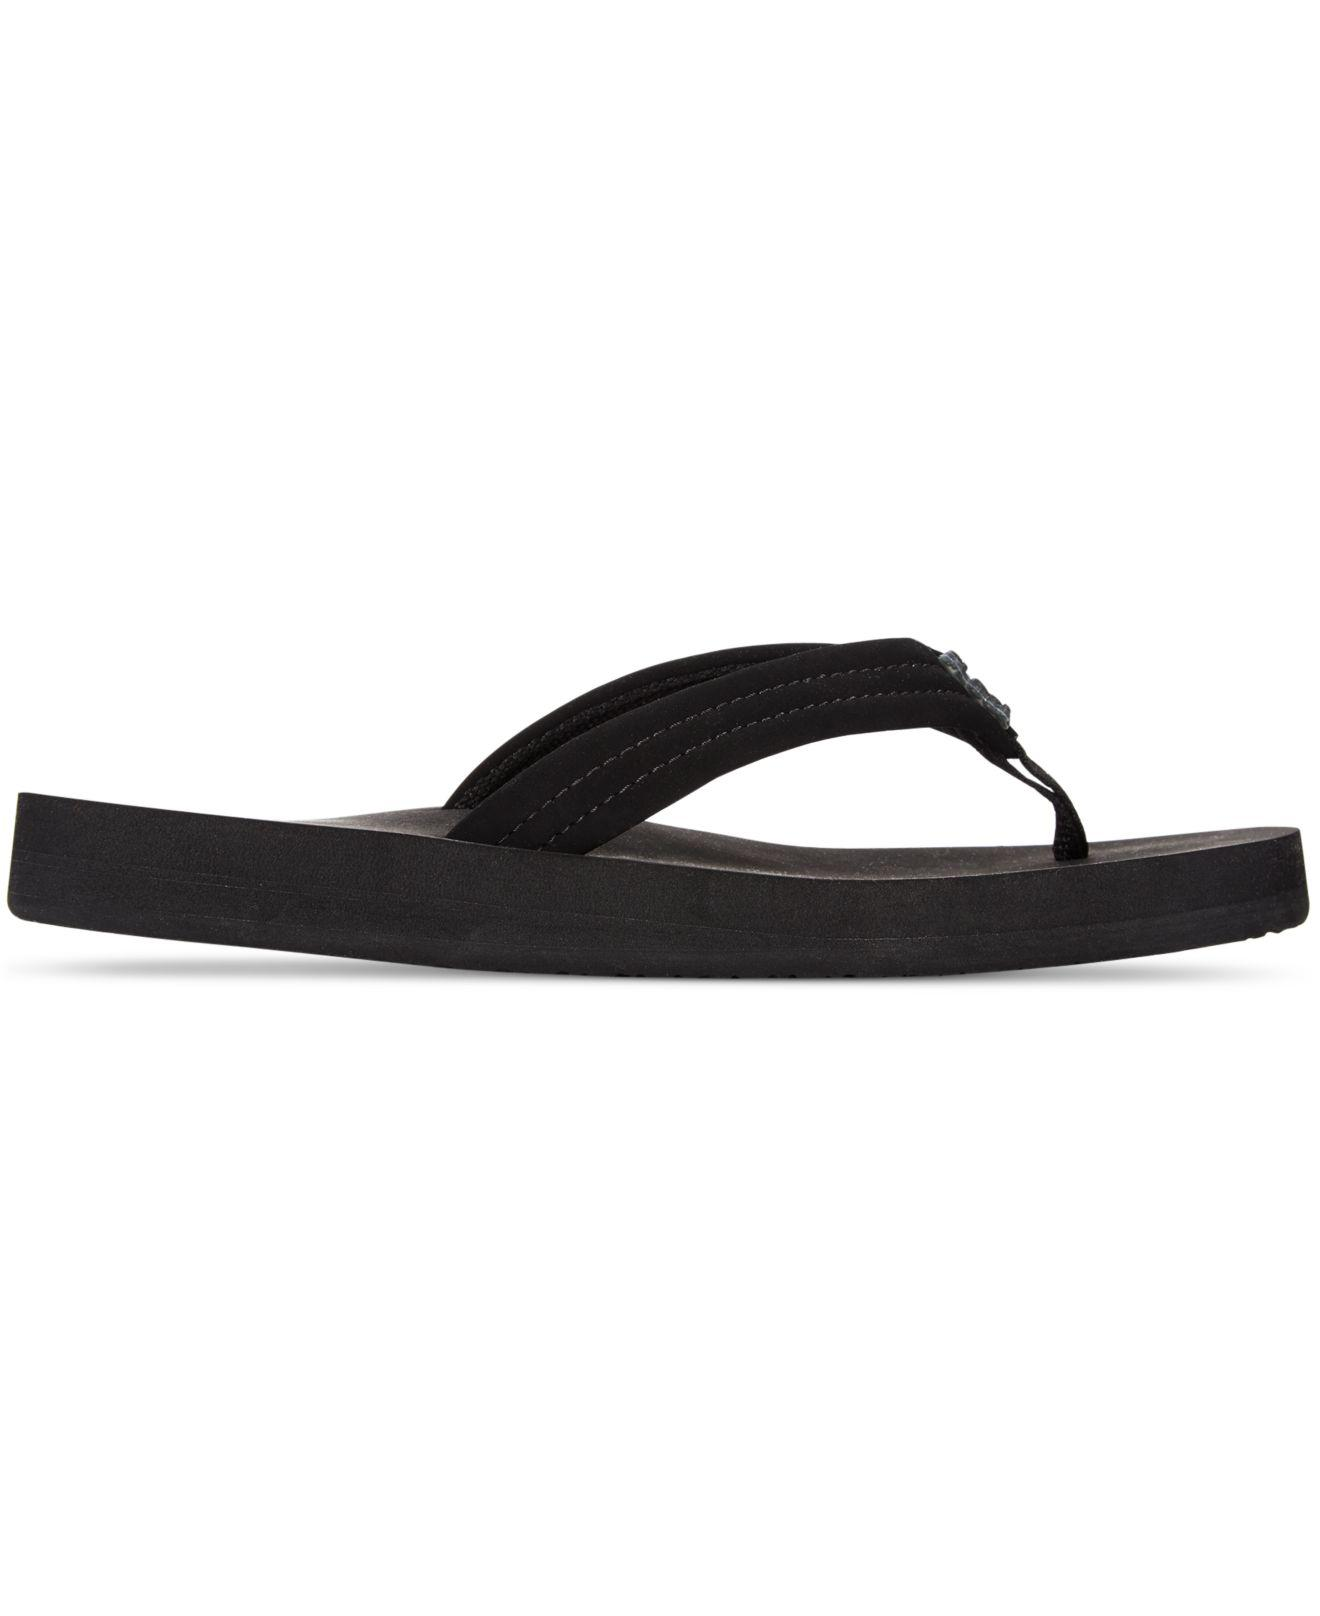 501405ce5a Lyst - Reef Cushion Breeze Thong Flip-flop Flatform Sandals in Black